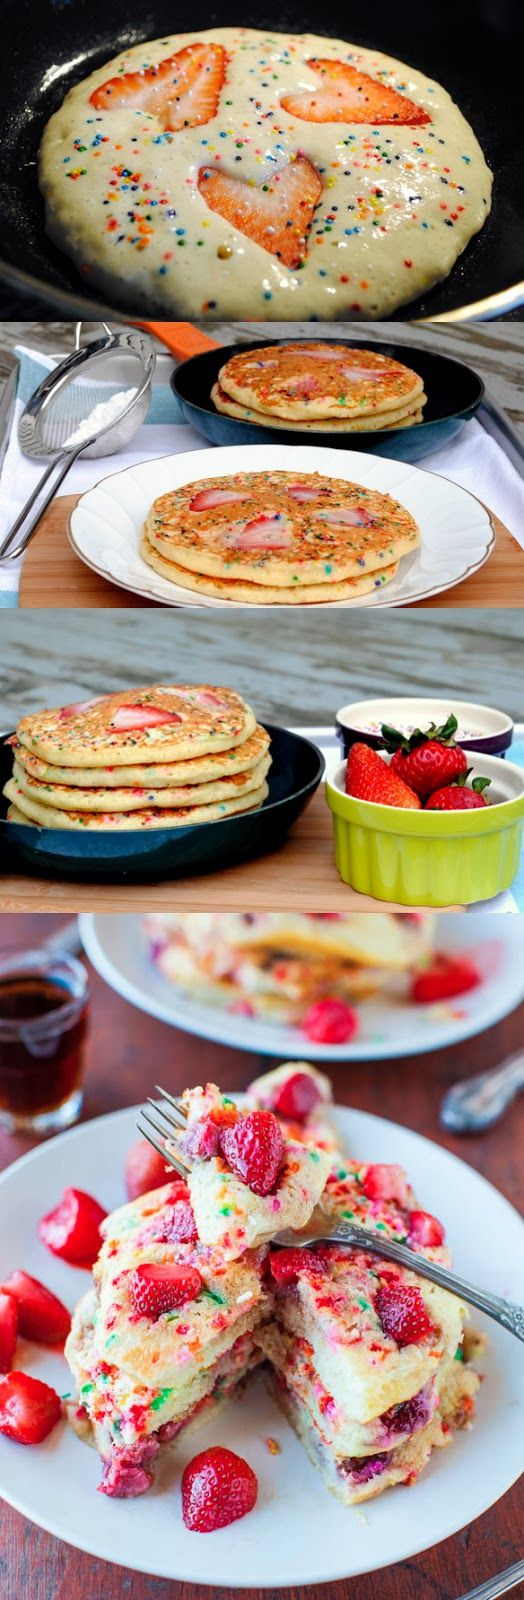 Exclusive Foods: Strawberry Sprinkle Funfetti Pancakes